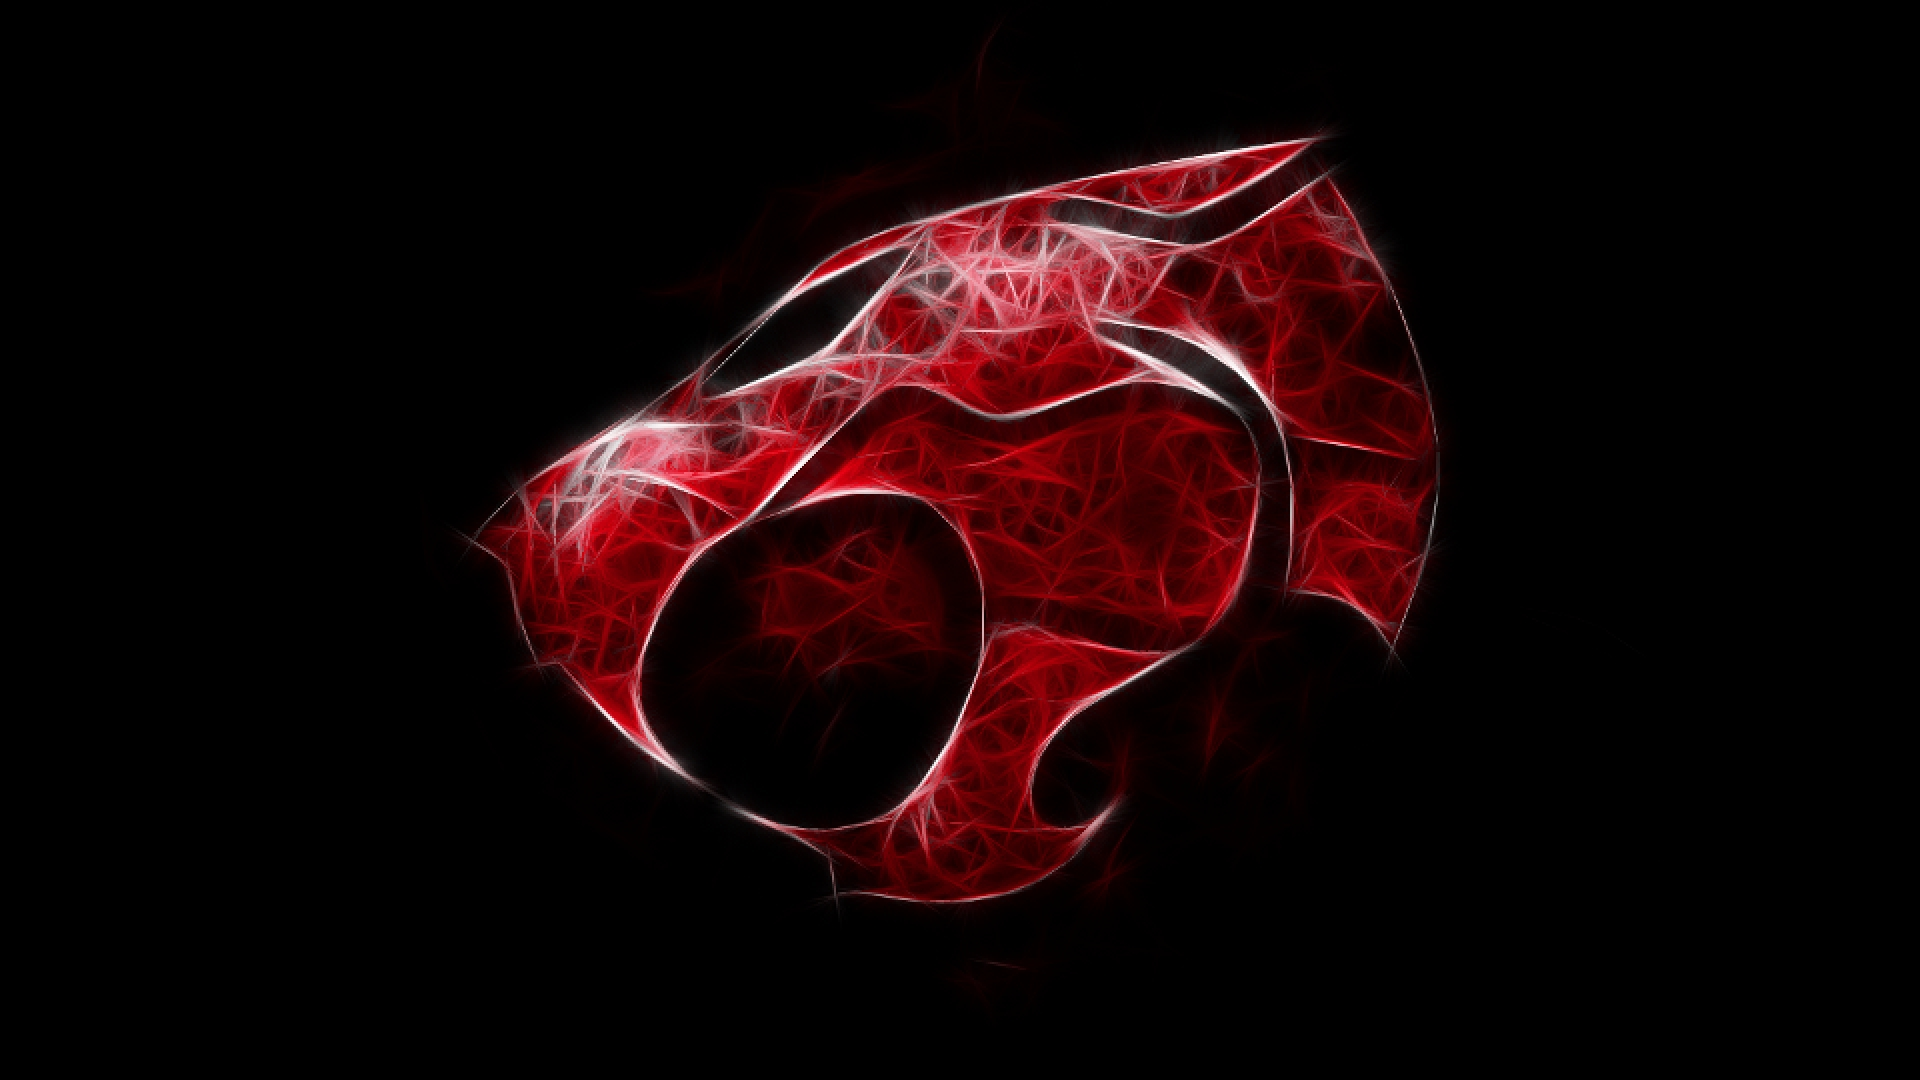 Alpha Coders | Wallpaper Abyss Caricatura Thundercats 163252